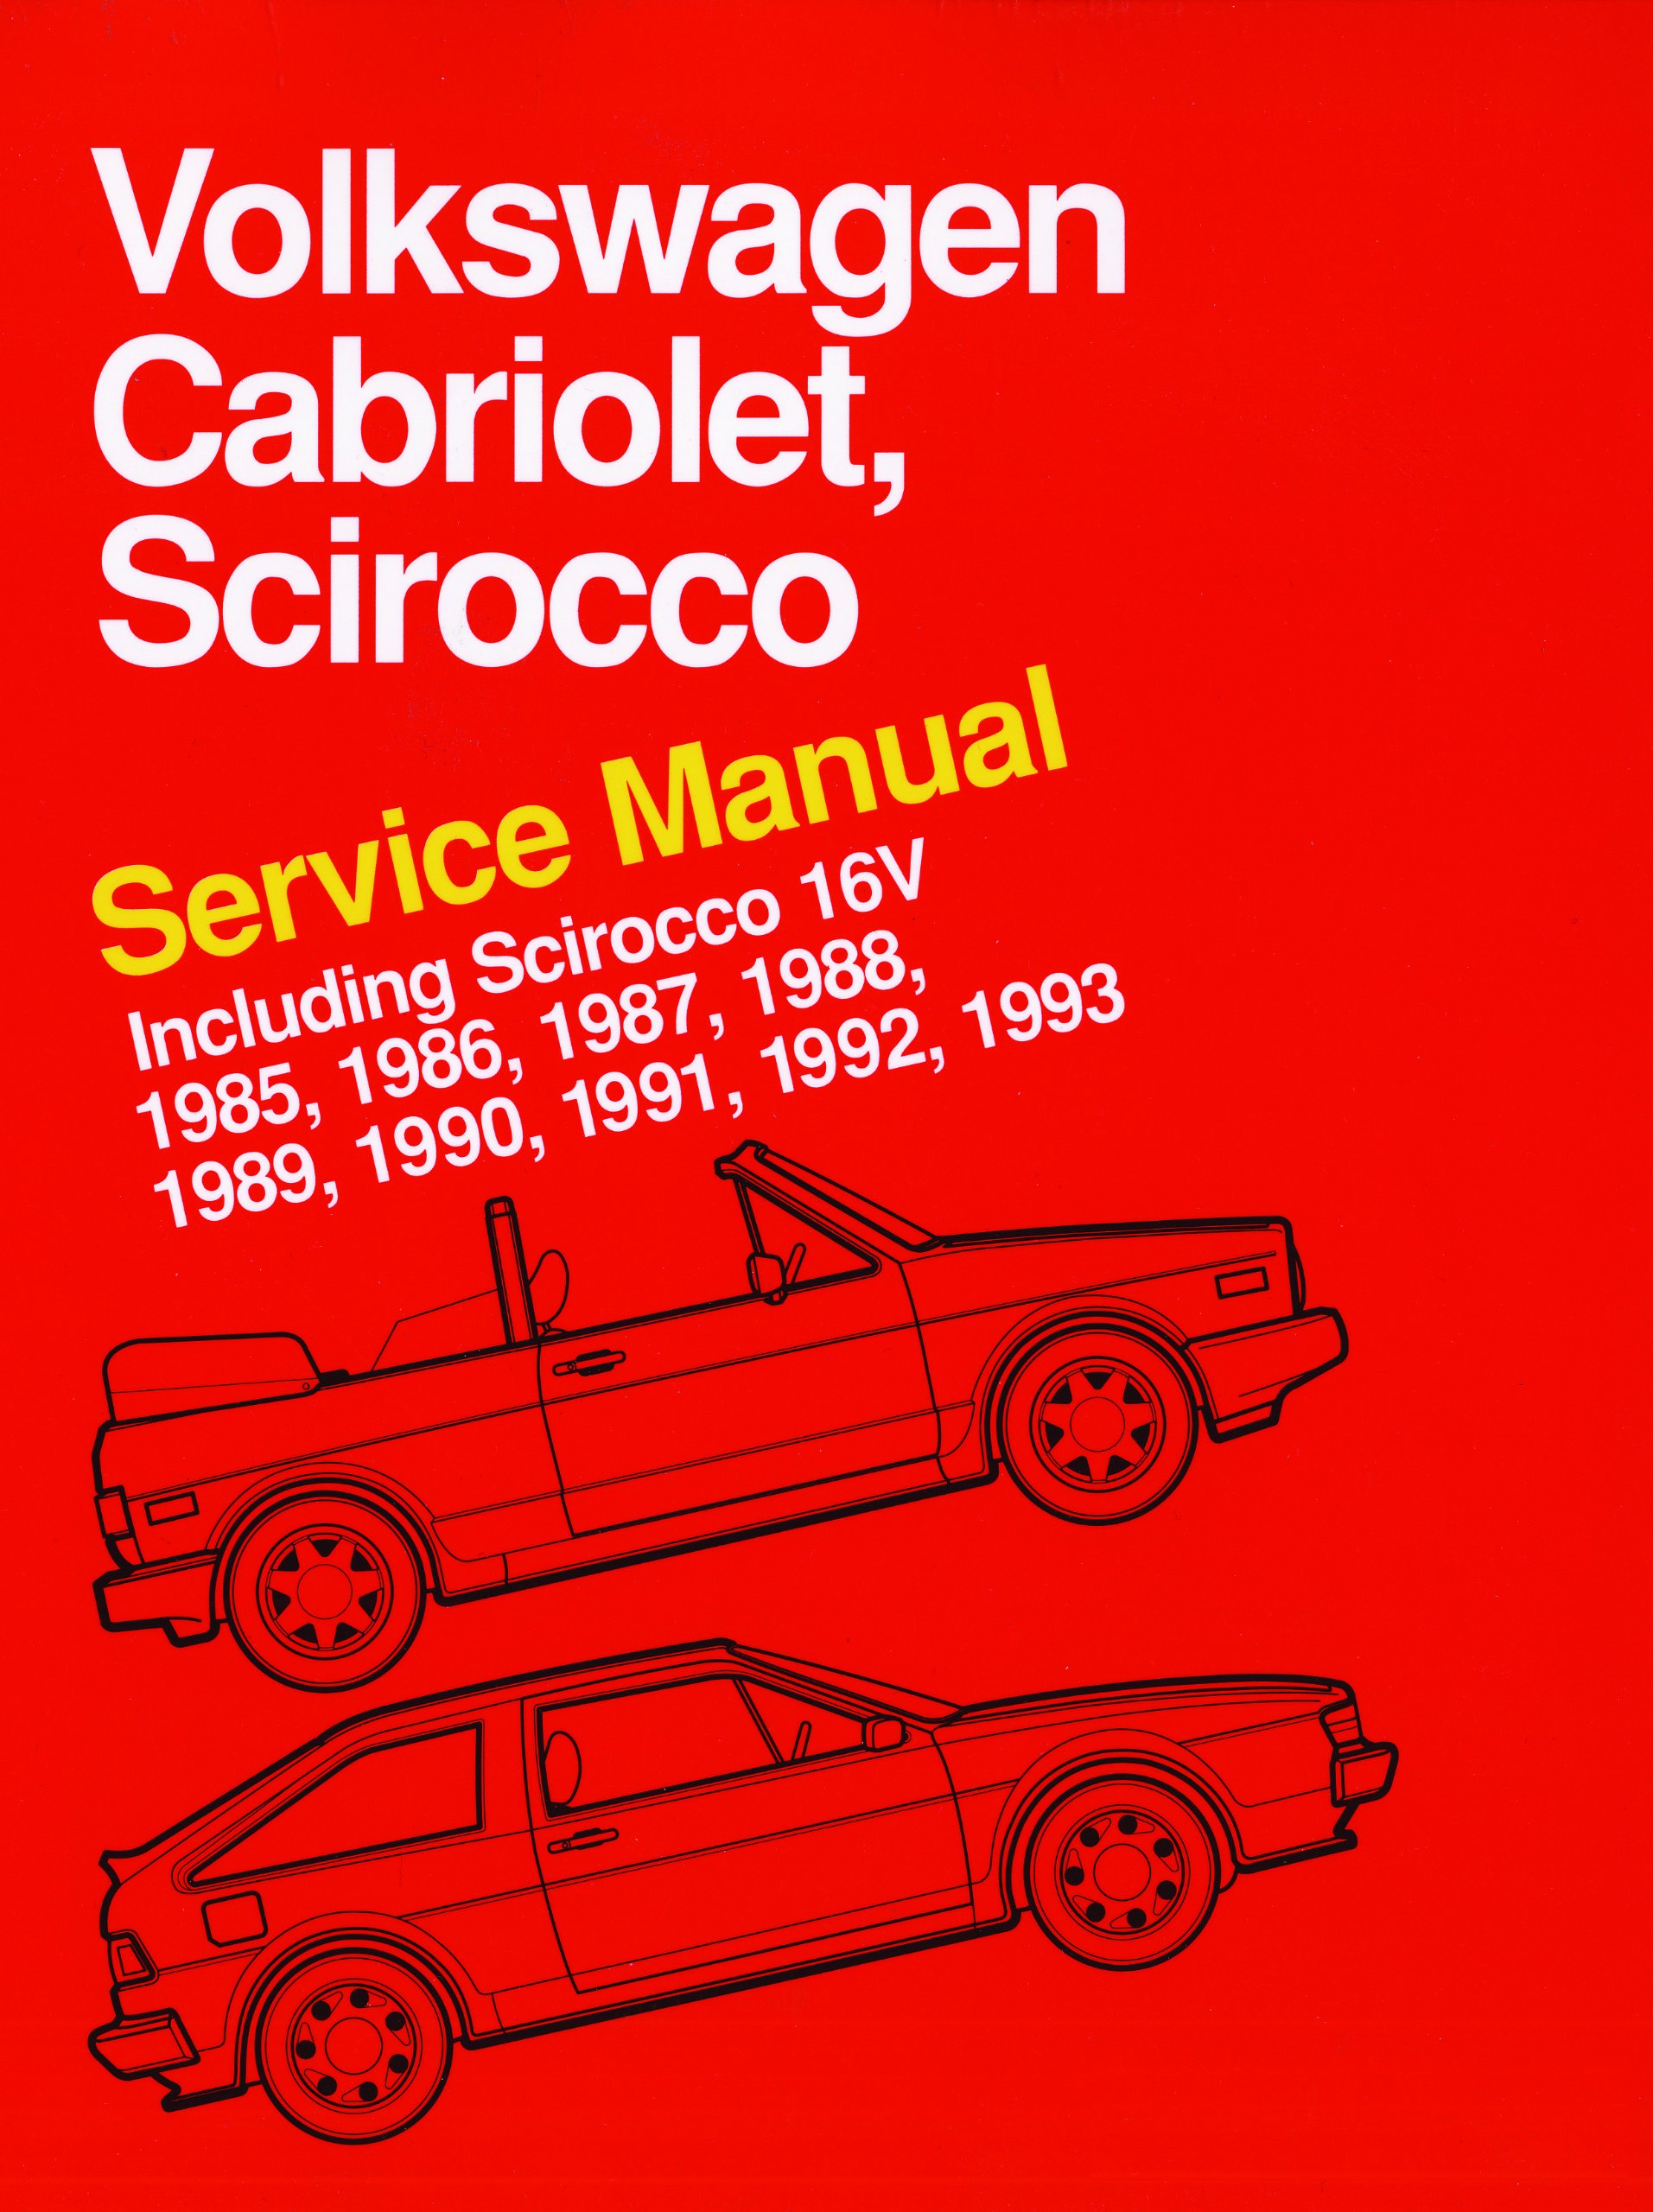 Volkswagen Cabriolet, Scirocco Service Manual: 1985, 1986, 1987, 1988,  1989, 1990, 1991, 1992, 1993: Bentley Publishers: 9780837616360:  Amazon.com: Books